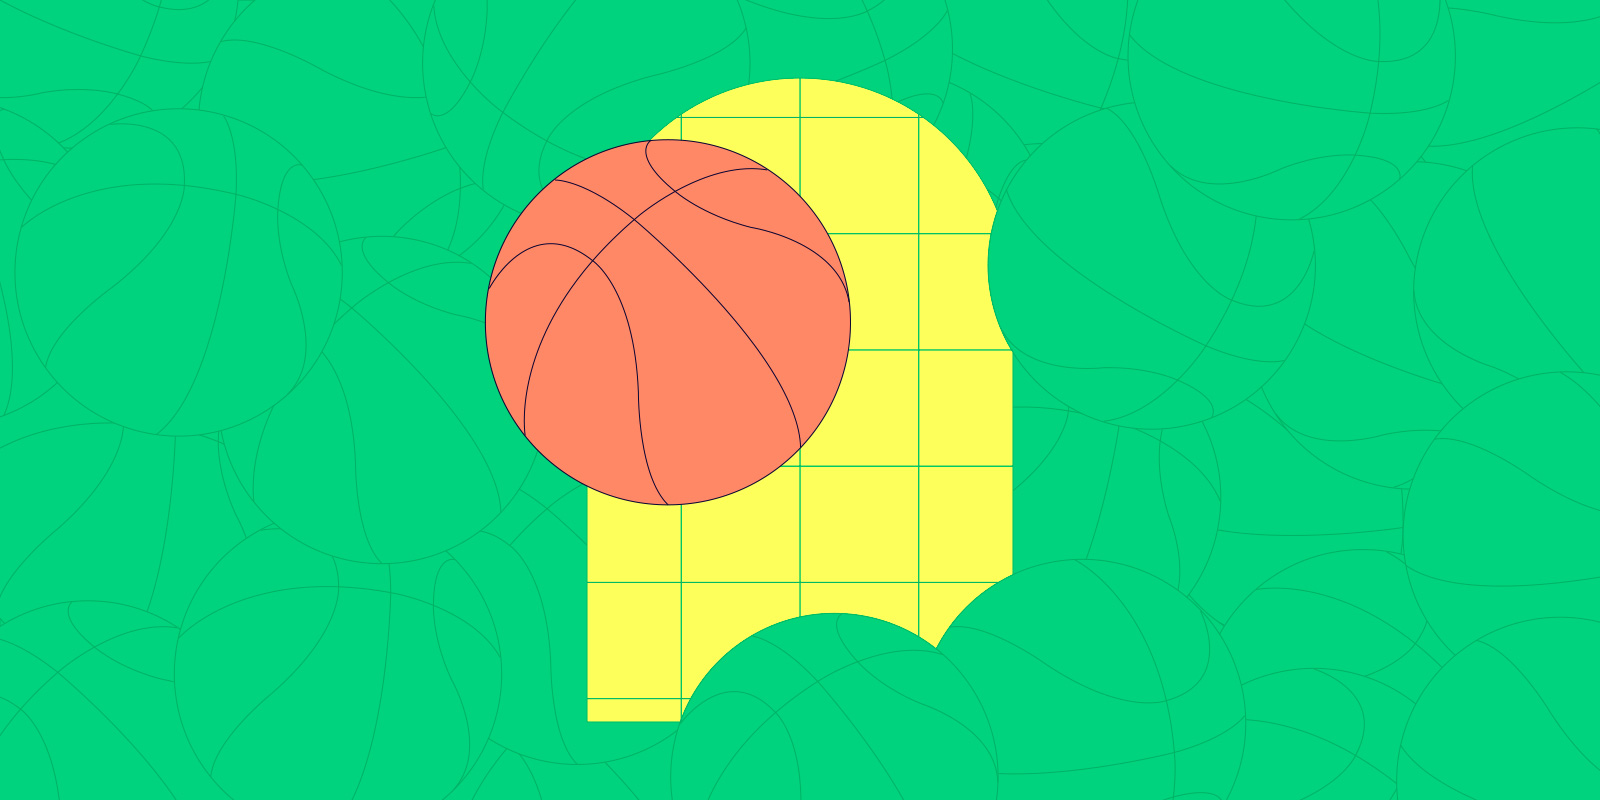 Play some .basketball in the GoLive phase!